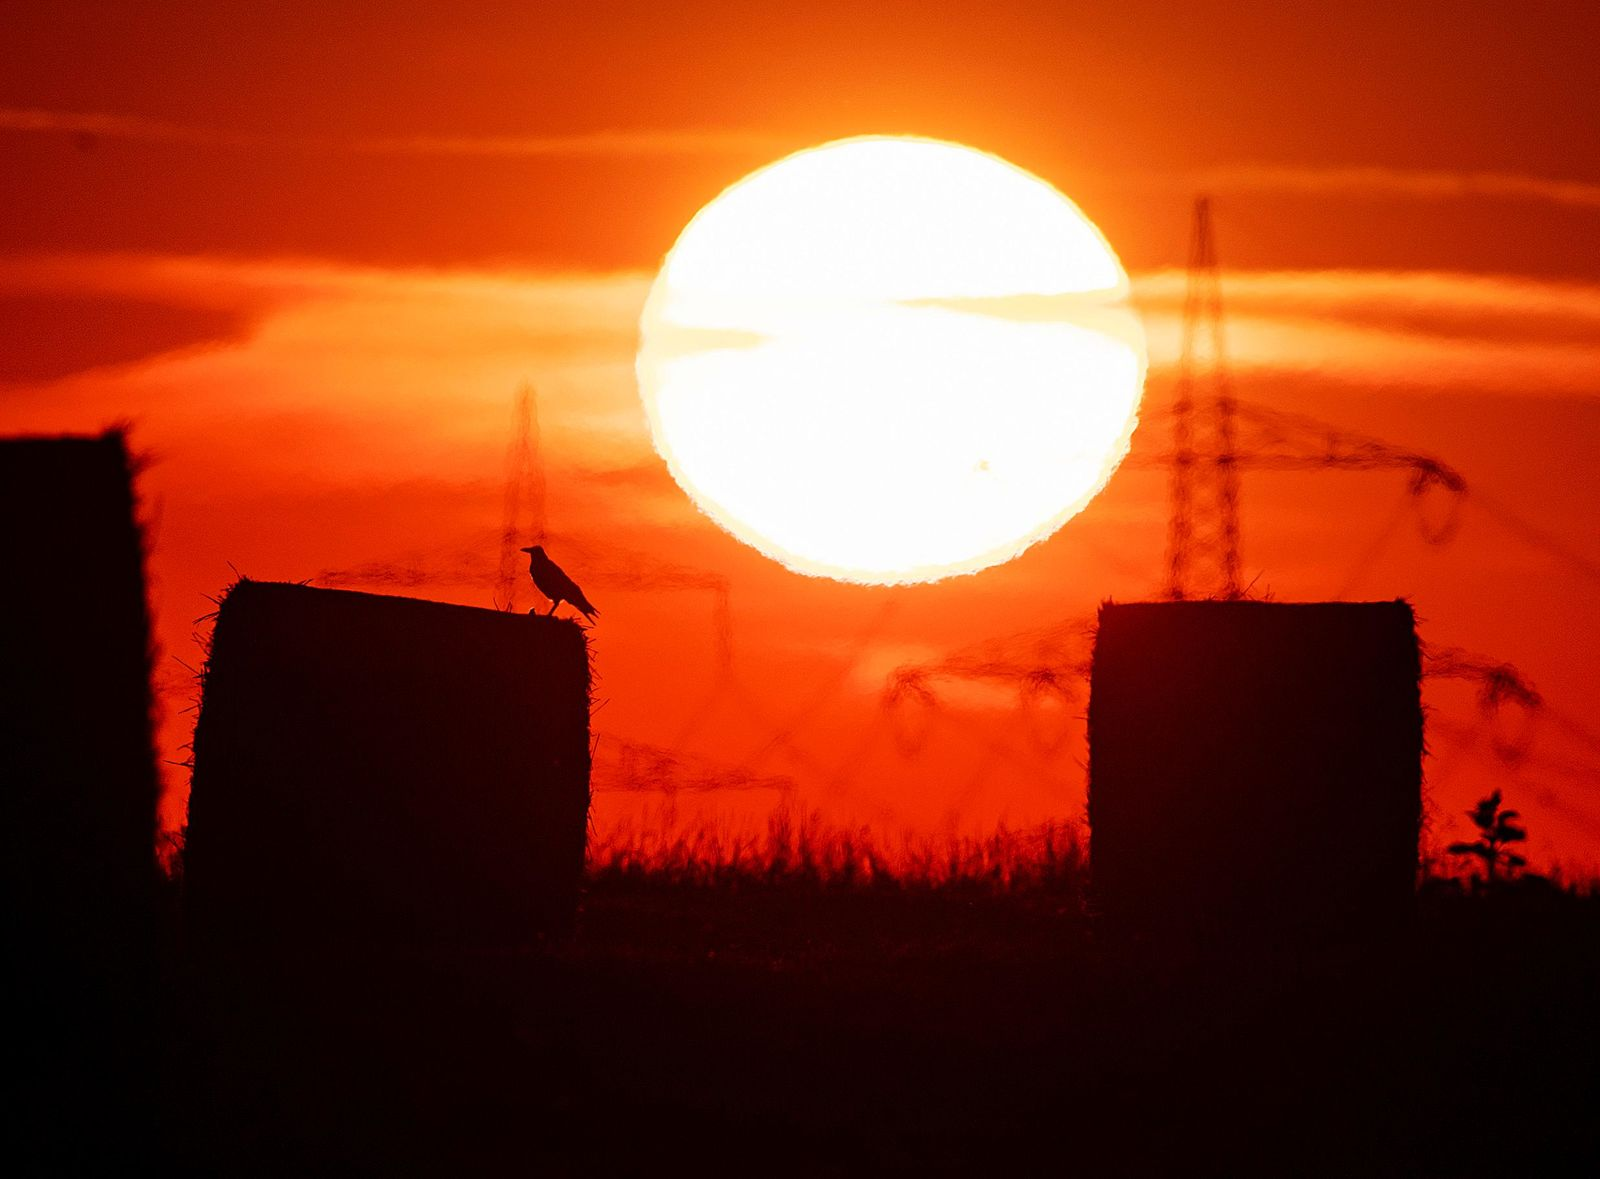 FILE - In this file photo dated Thursday, July 25, 2019, a bird sits on a straw bale on a field in Frankfurt, Germany, as the sun rises during an ongoing heatwave in Europe. (AP Photo/Michael Probst, FILE)